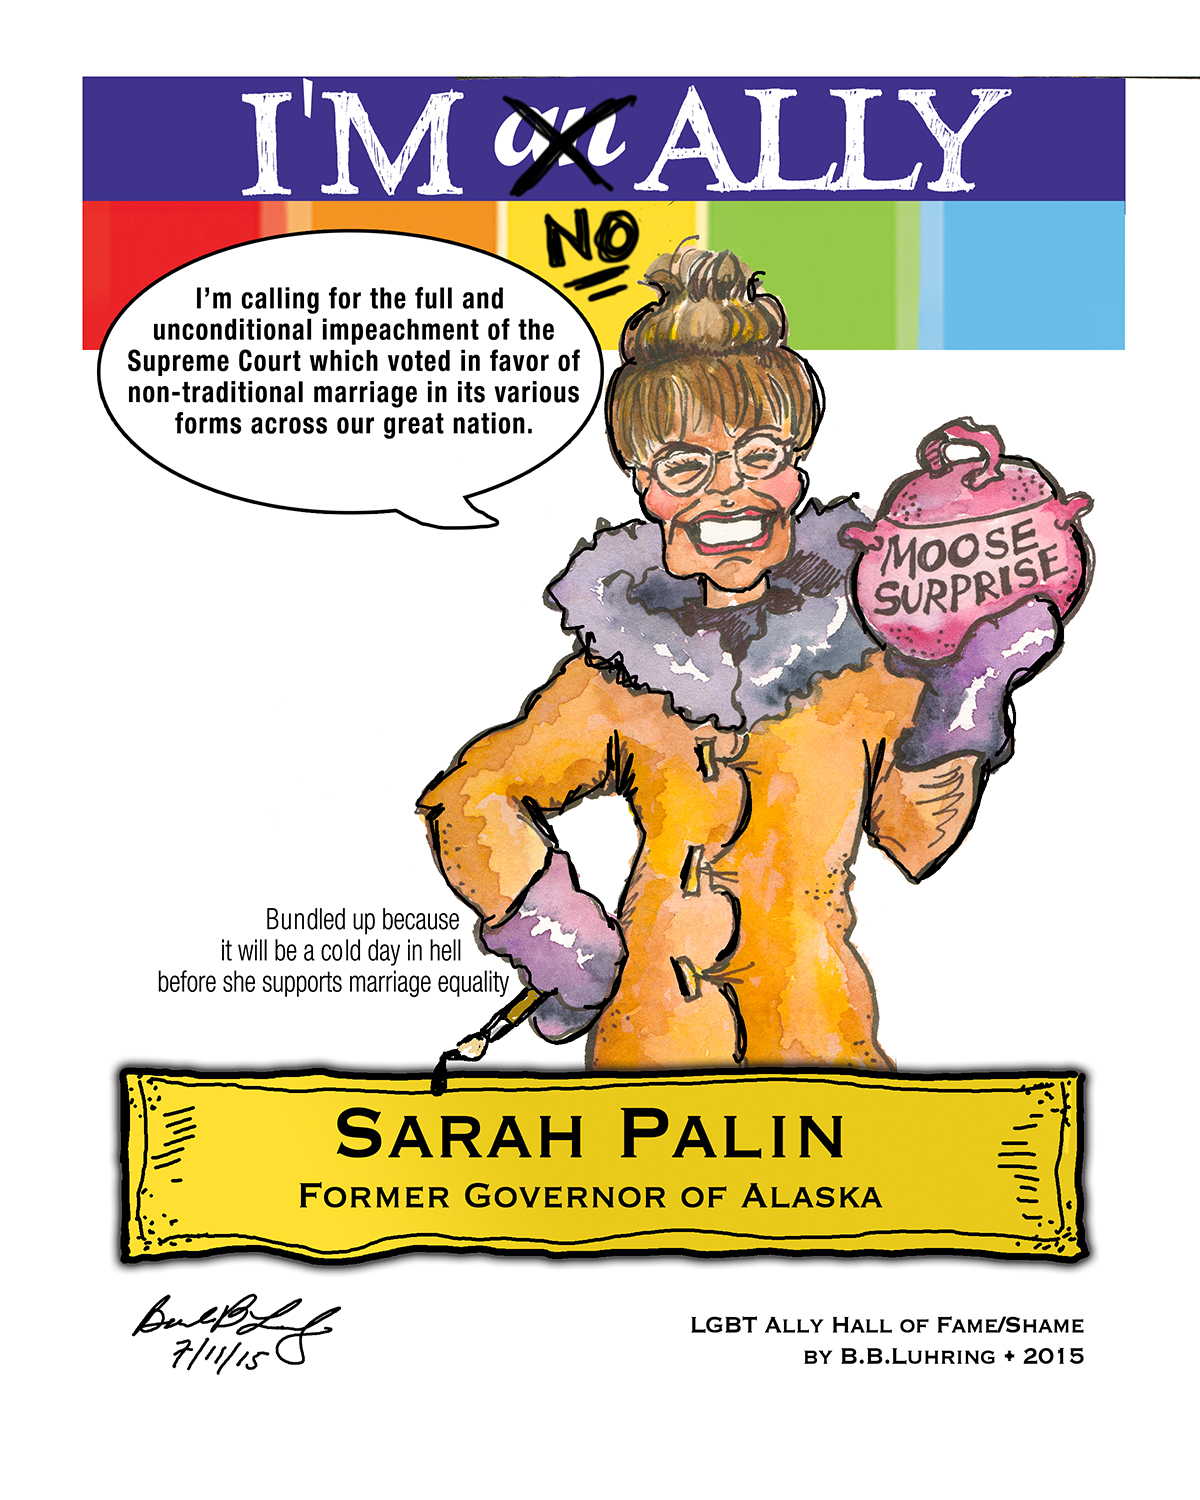 Former Governor of Alaska and unsuccessful candidate for Vice President of the United States Sarah Palin really went all in on the wrong side of history with her Tweet. Cartoon by Geez! I'm Angry